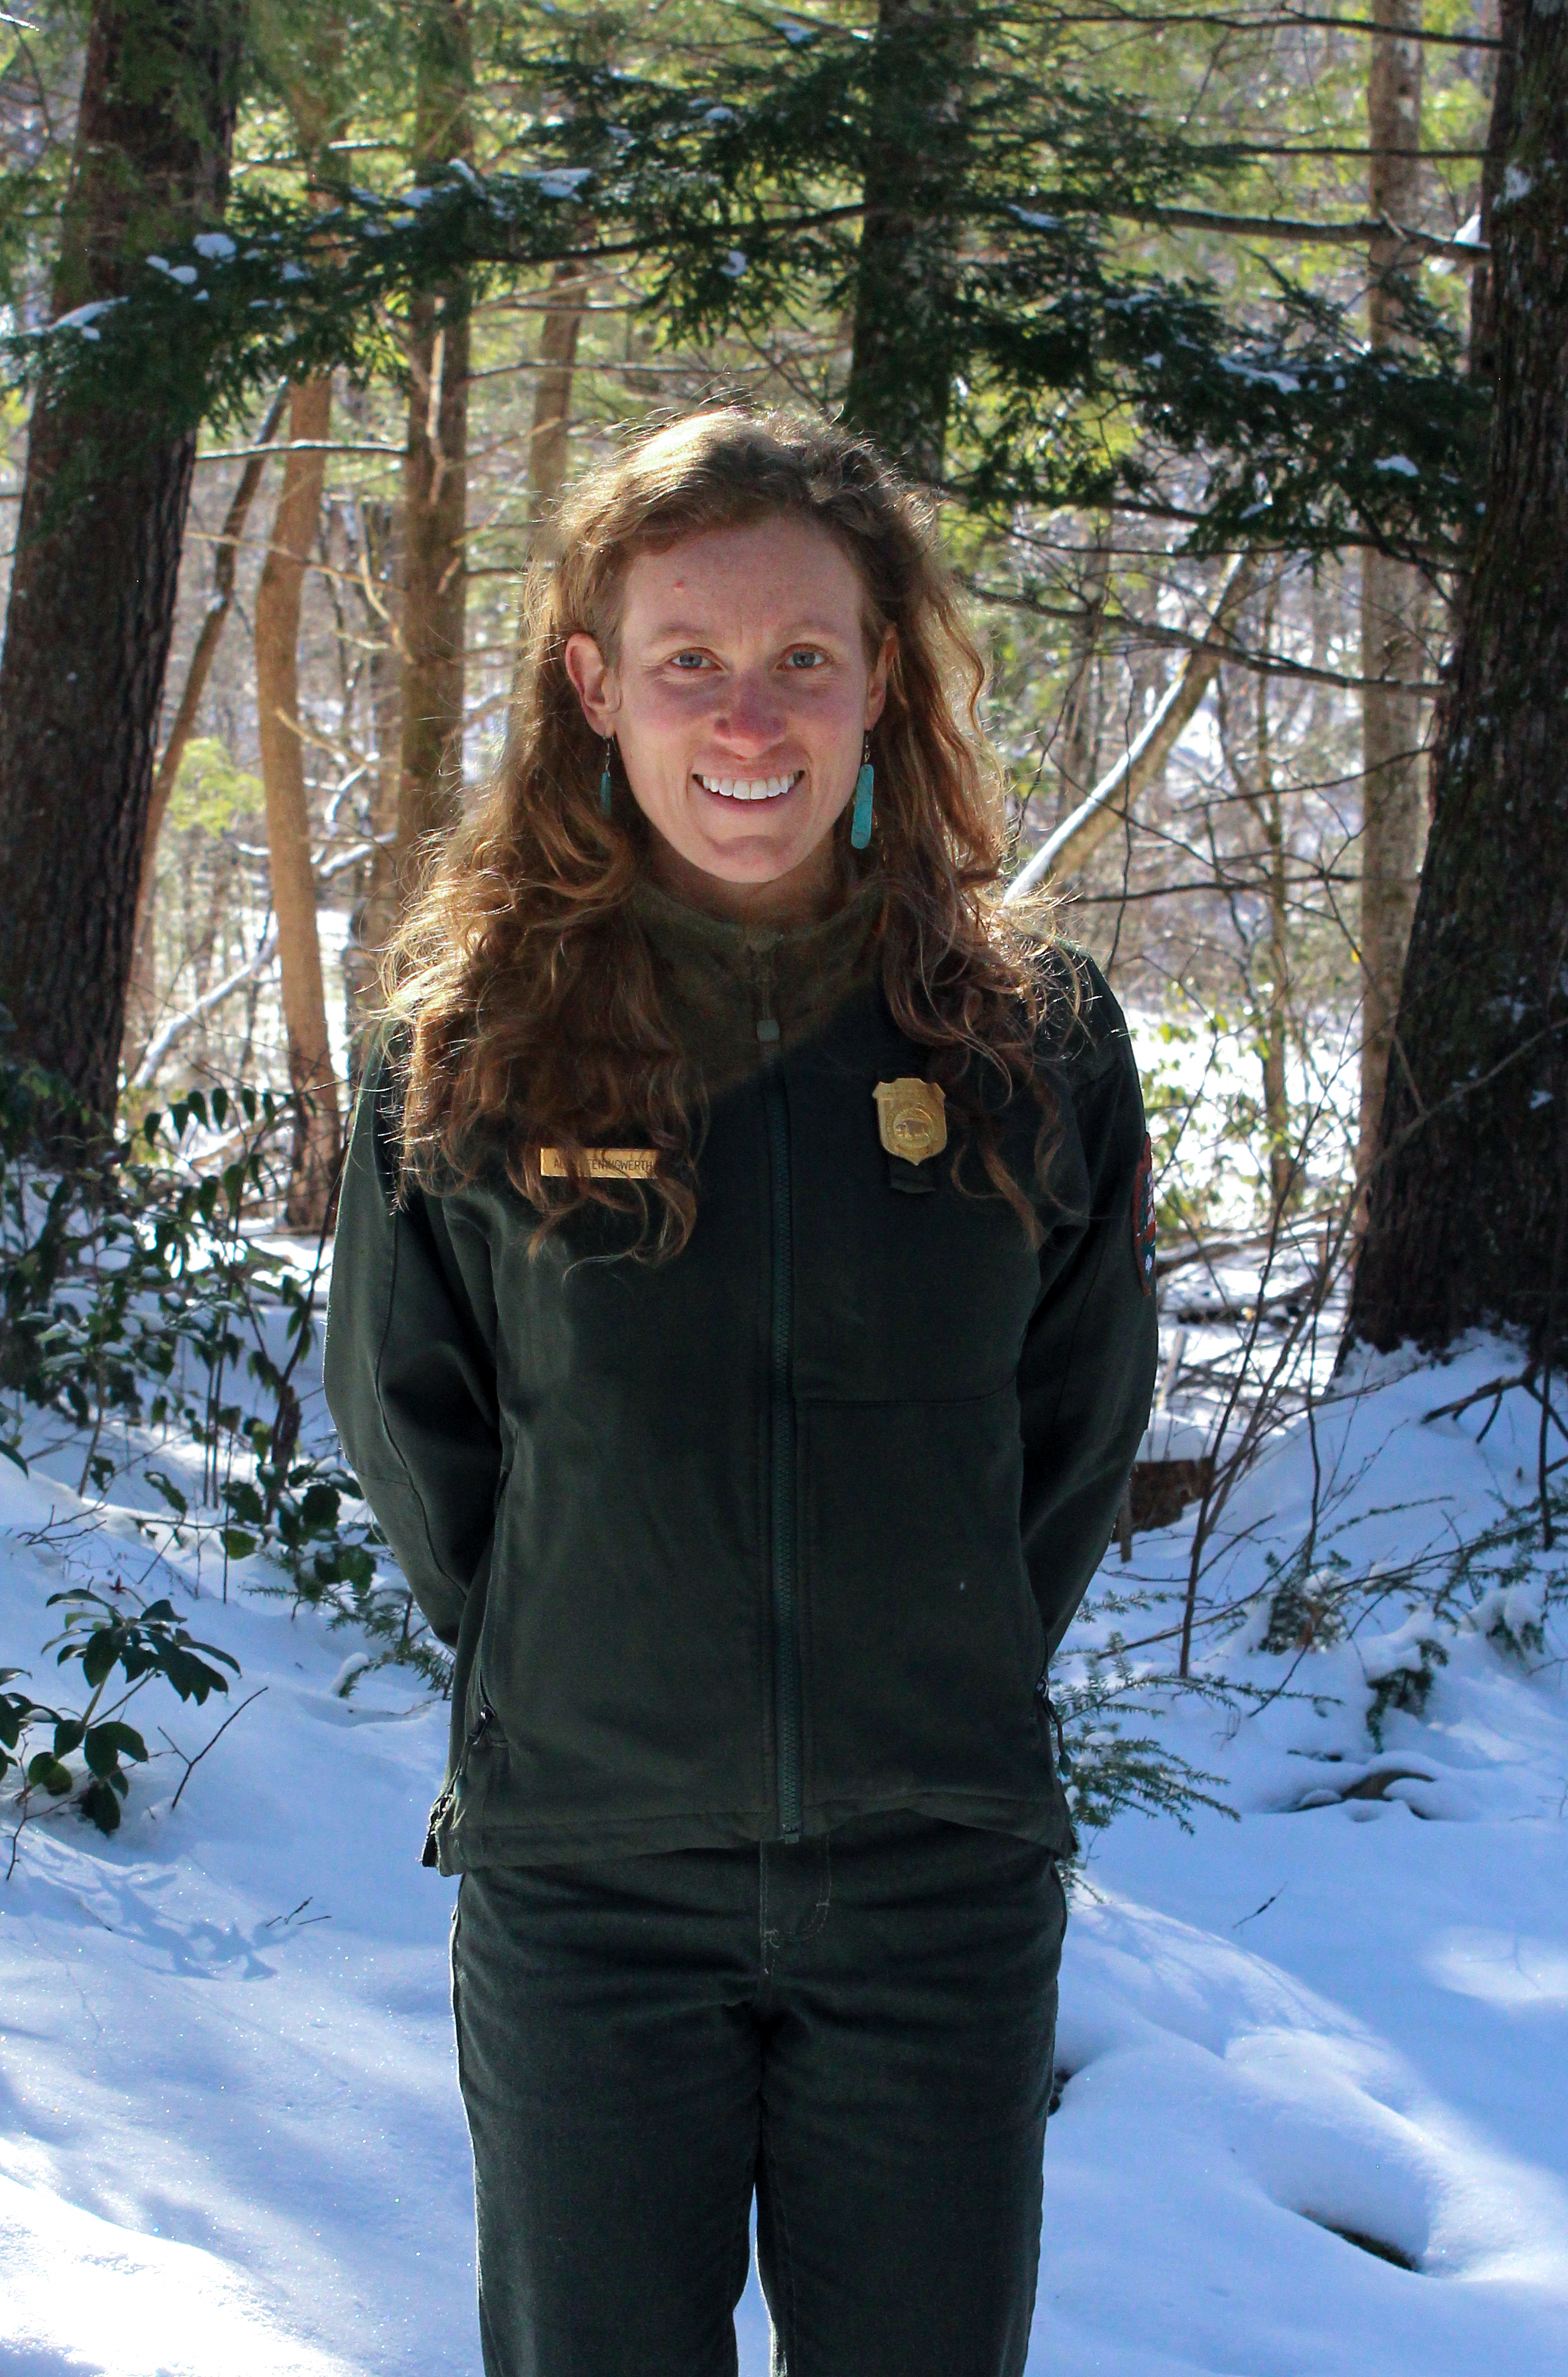 Alix Pfennigwerth maps and surveys wetlands as a biological science technician with the Inventory and Monitoring program at GSMNP. Photo courtesy of Emma DuFort, GSMA.